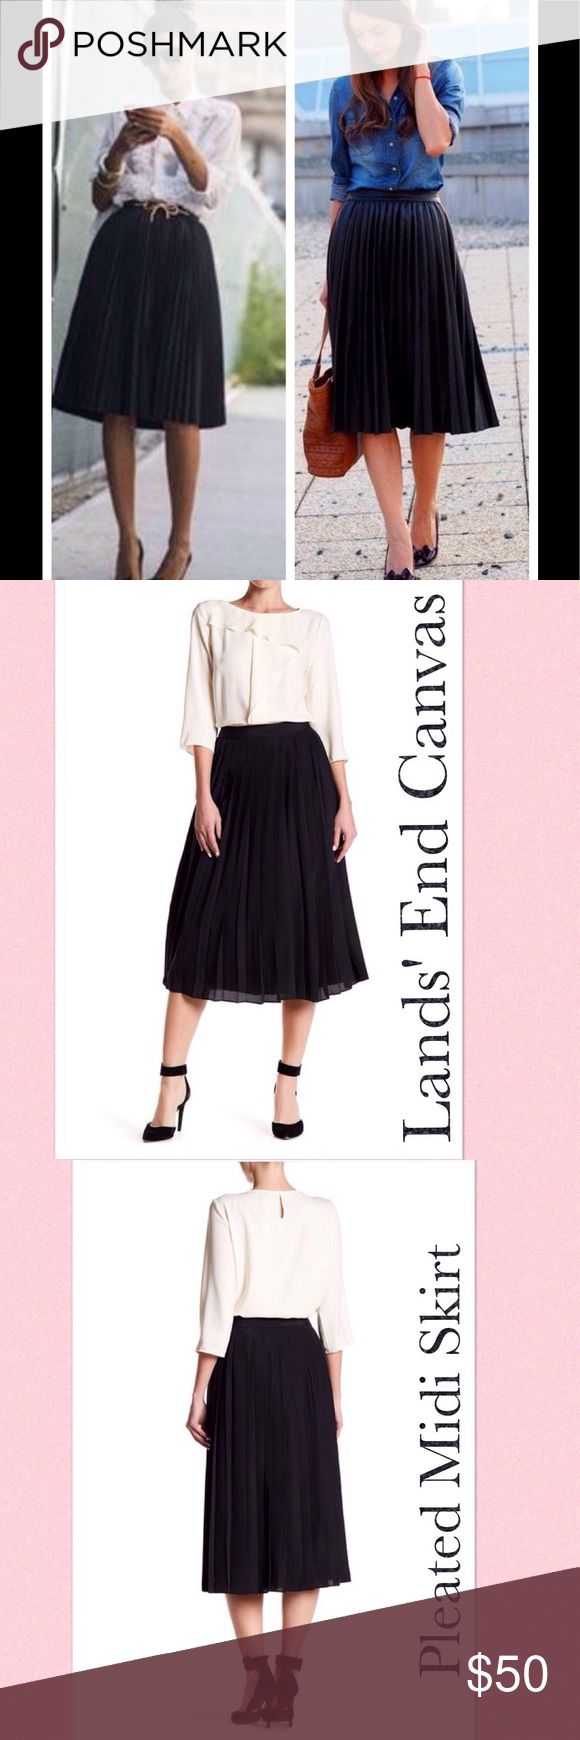 """Black Pleated Midi Skirt by Lands' End Canvas Black pleated midi skirt by Lands' End Canvas. Banded waist, hidden back zip w/ hook & eye clasp. A-line silhouette, smi-sheer, tonal lining, high rise waist, knife pleat design. Approx 30"""" long. NWOT from vendor..First pic is for styling ideas only. Pic 2 & 3 are actual item. Lands' End Skirts Midi"""